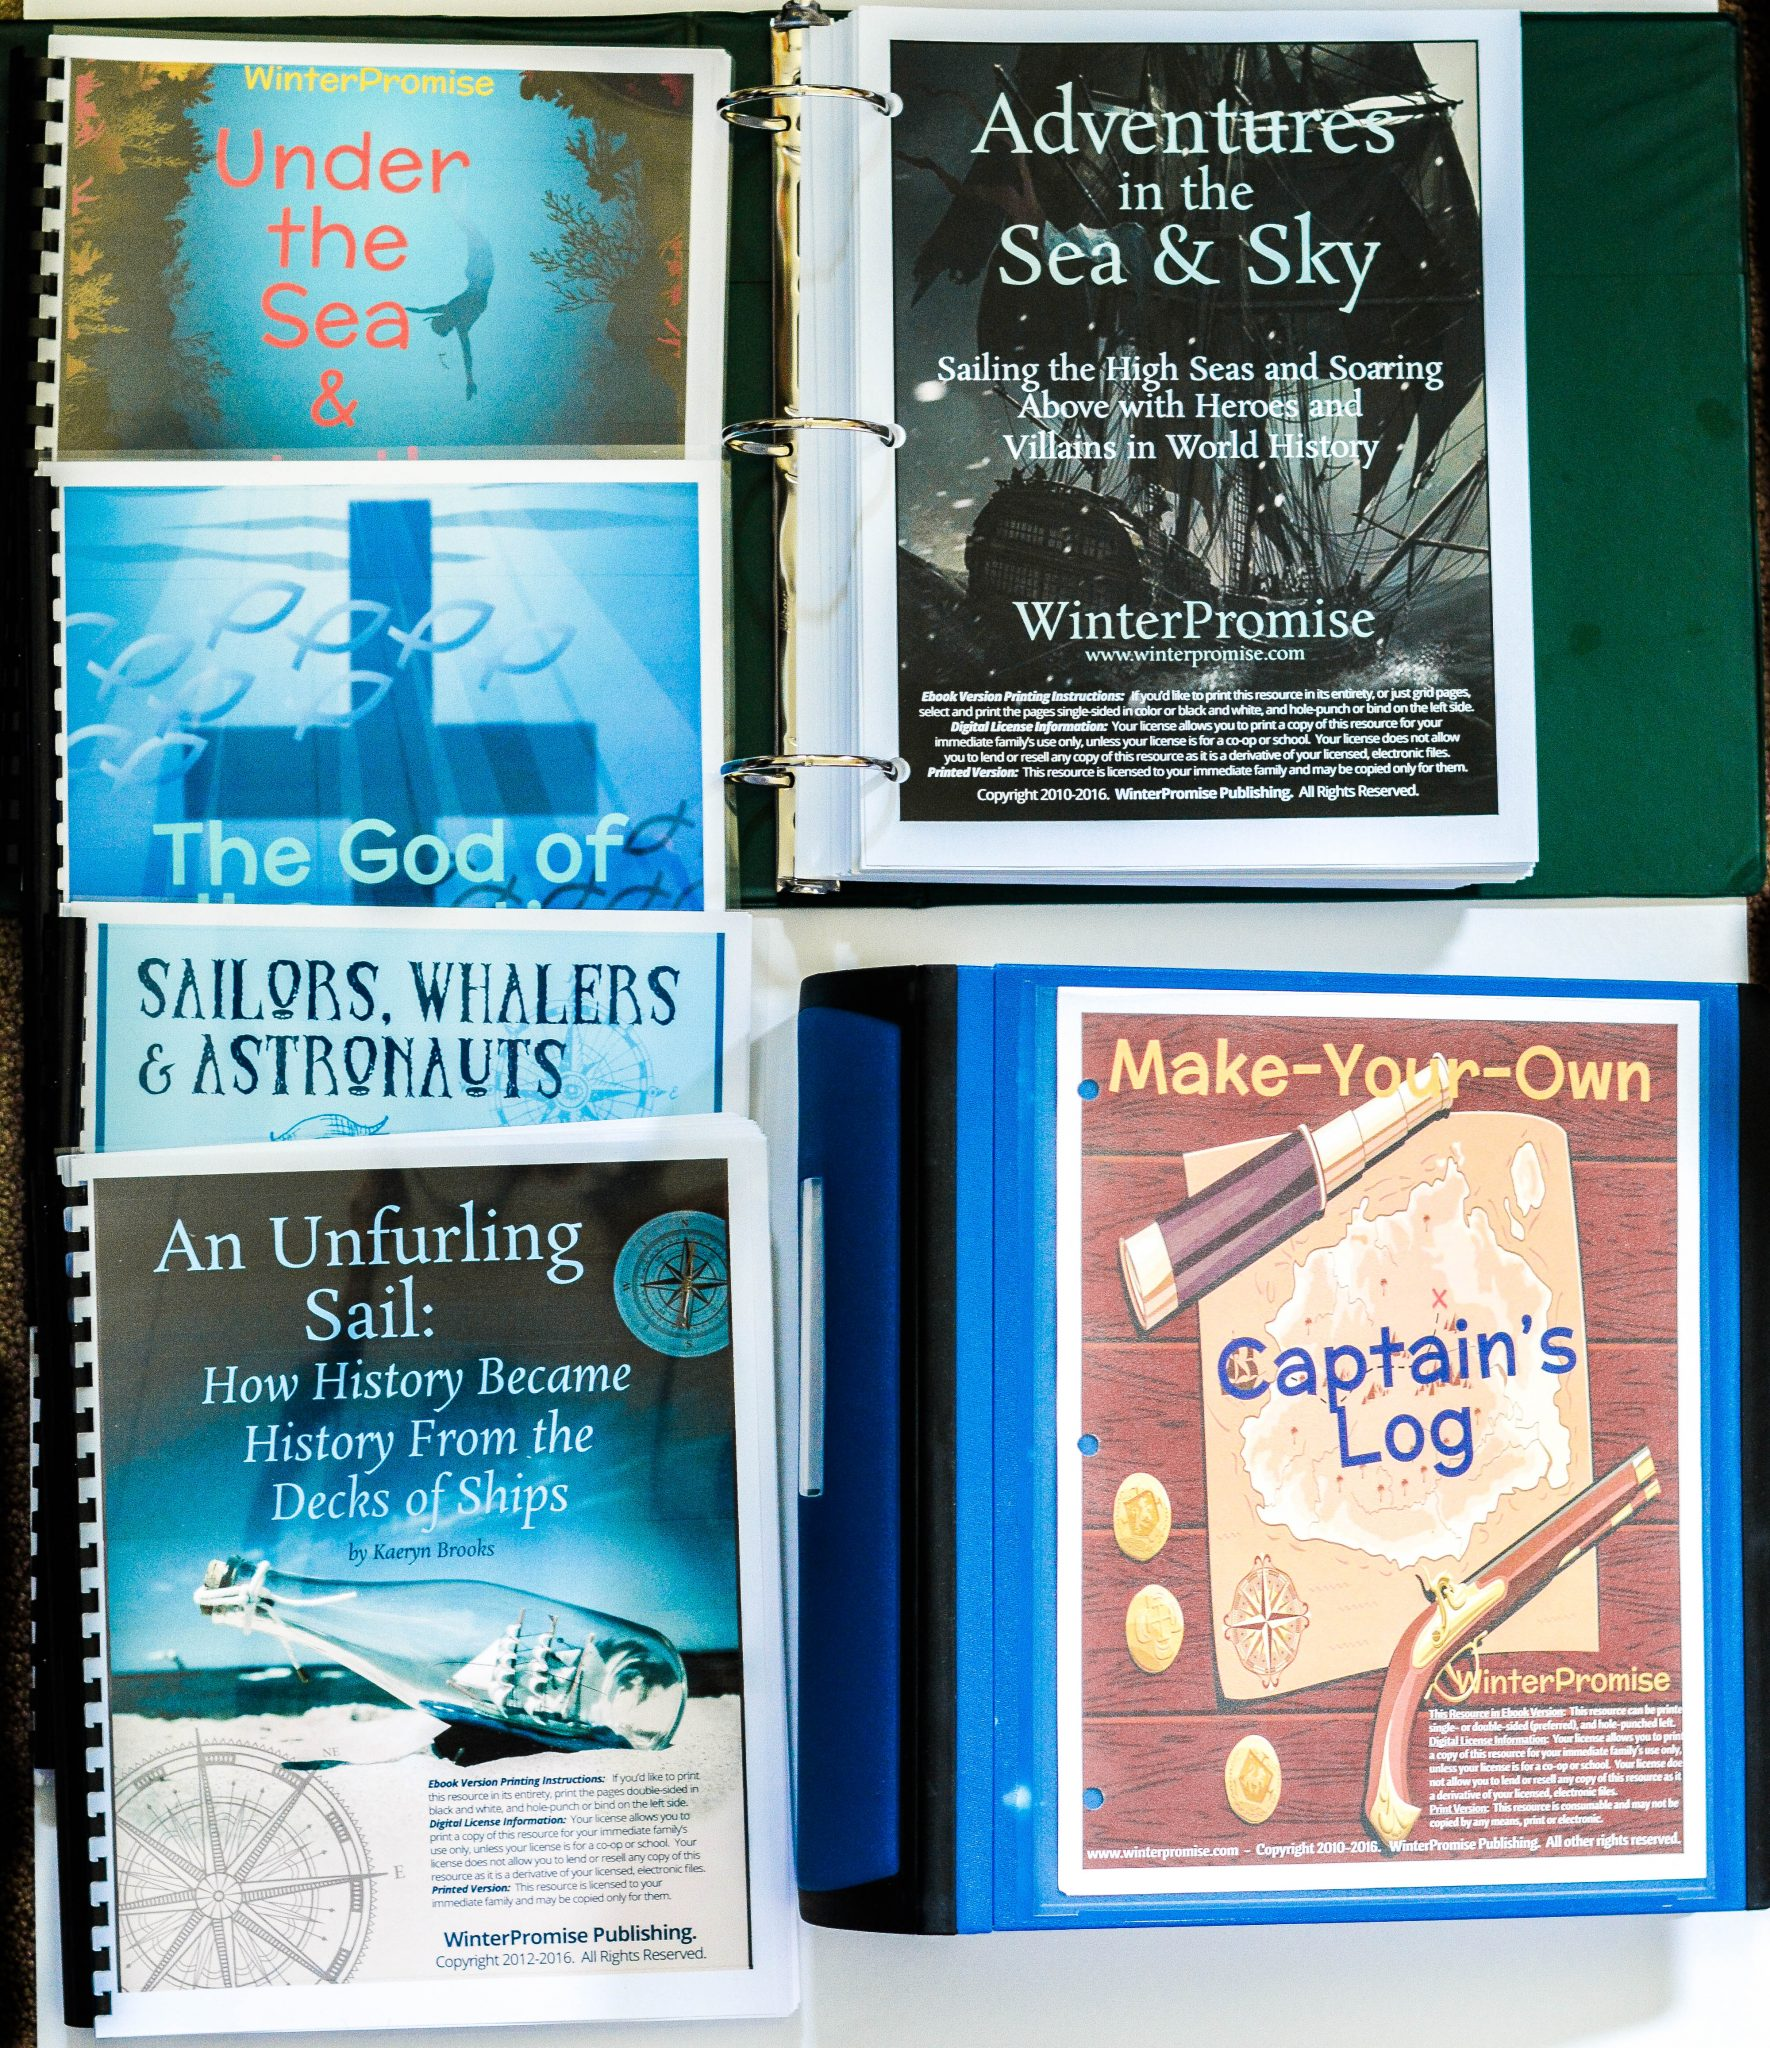 Adventures in the Sea and Sky WinterPromise themed program